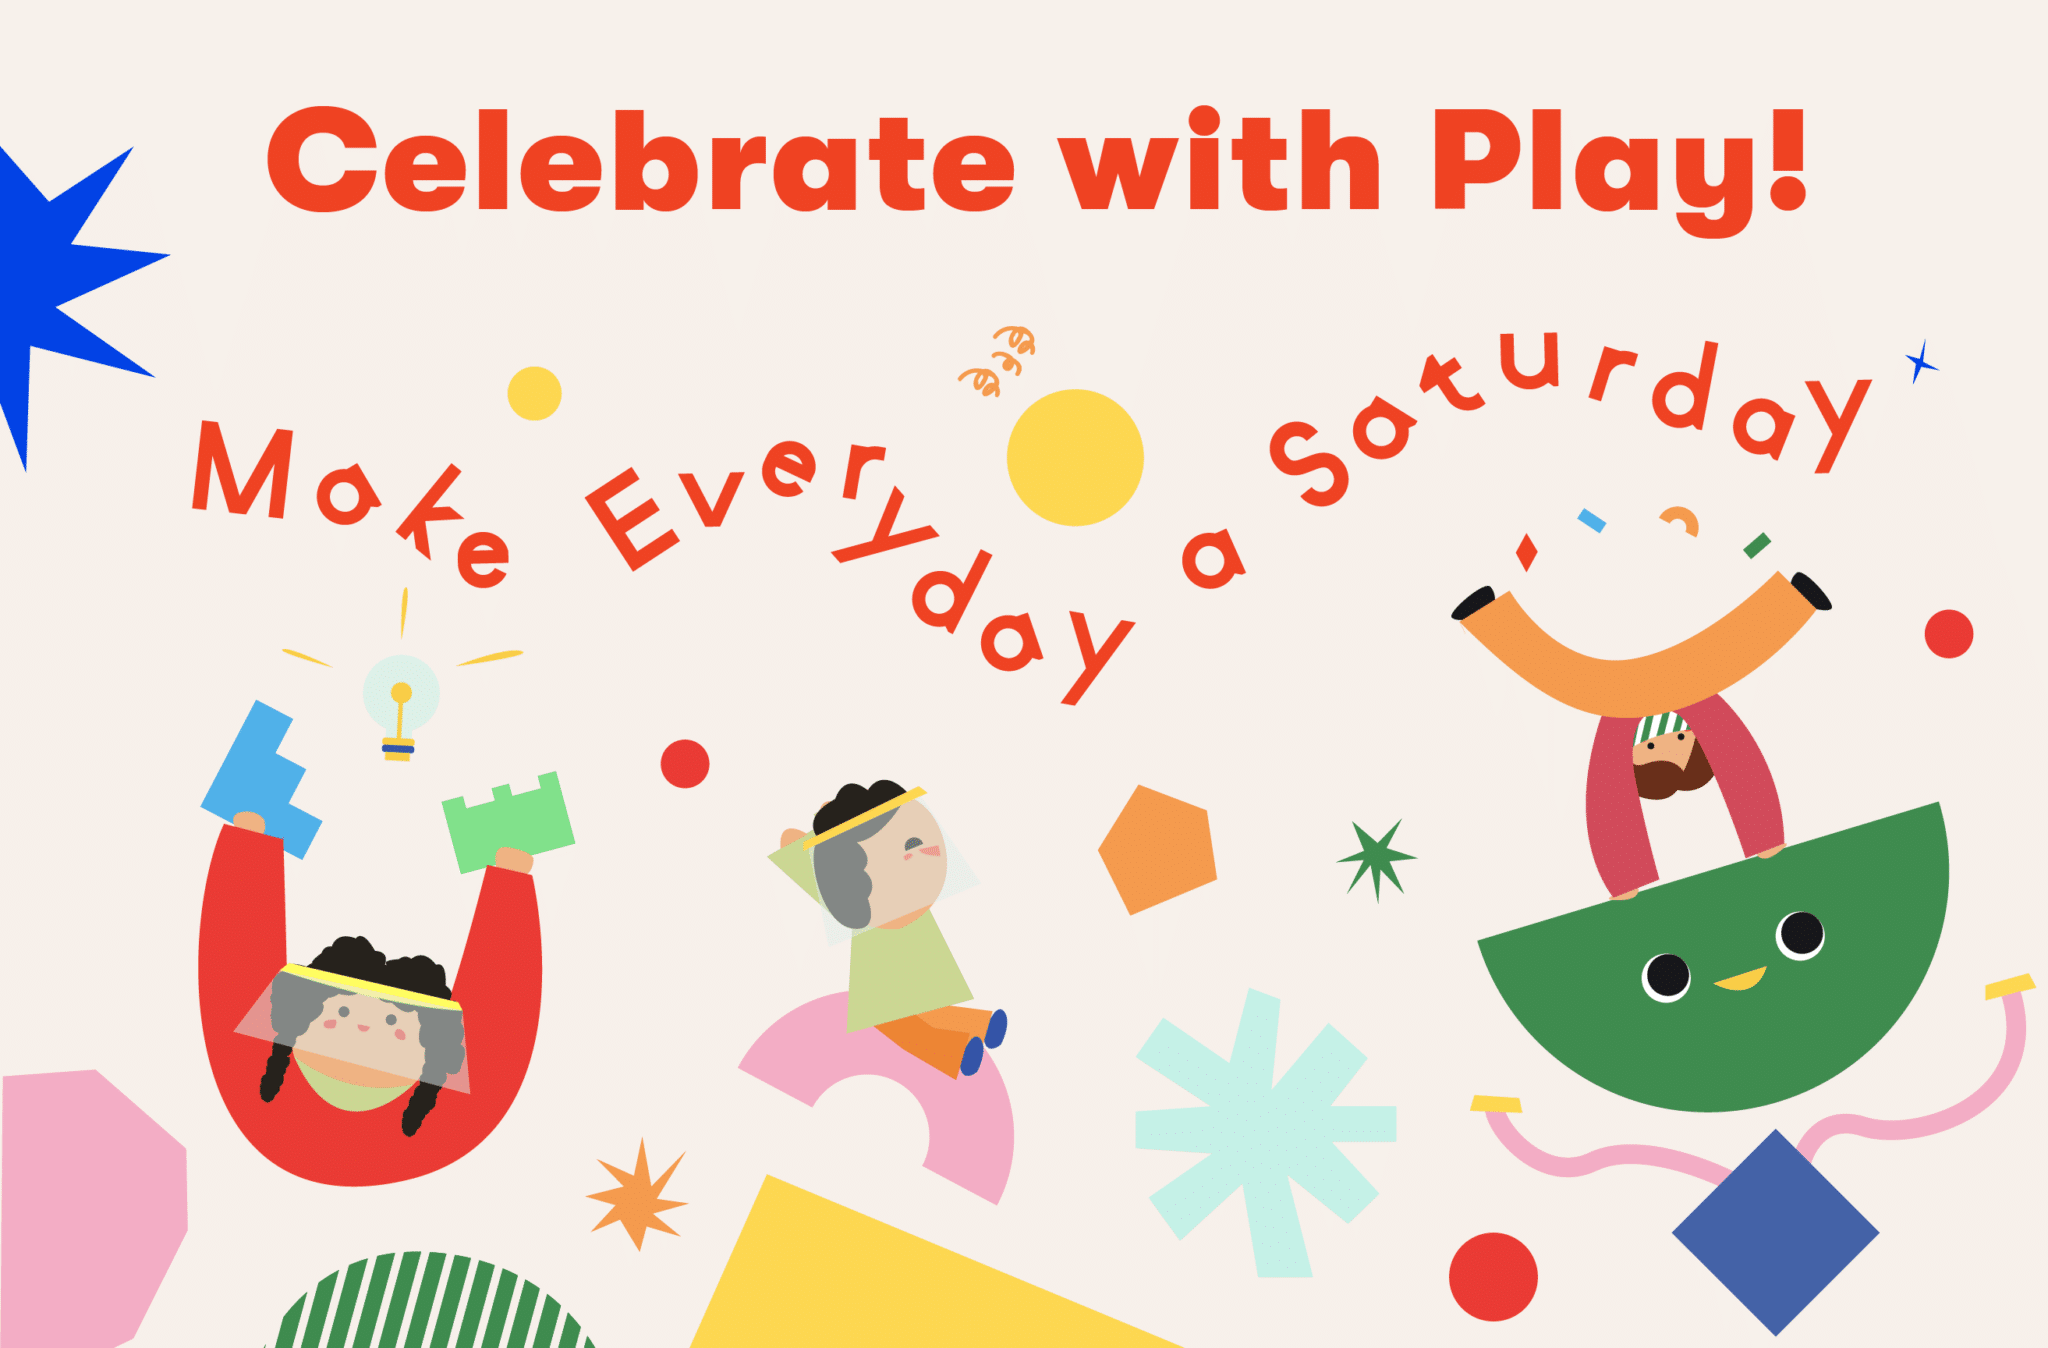 Celebrate with Play – Make Every Day a Saturday this Year-end Holiday